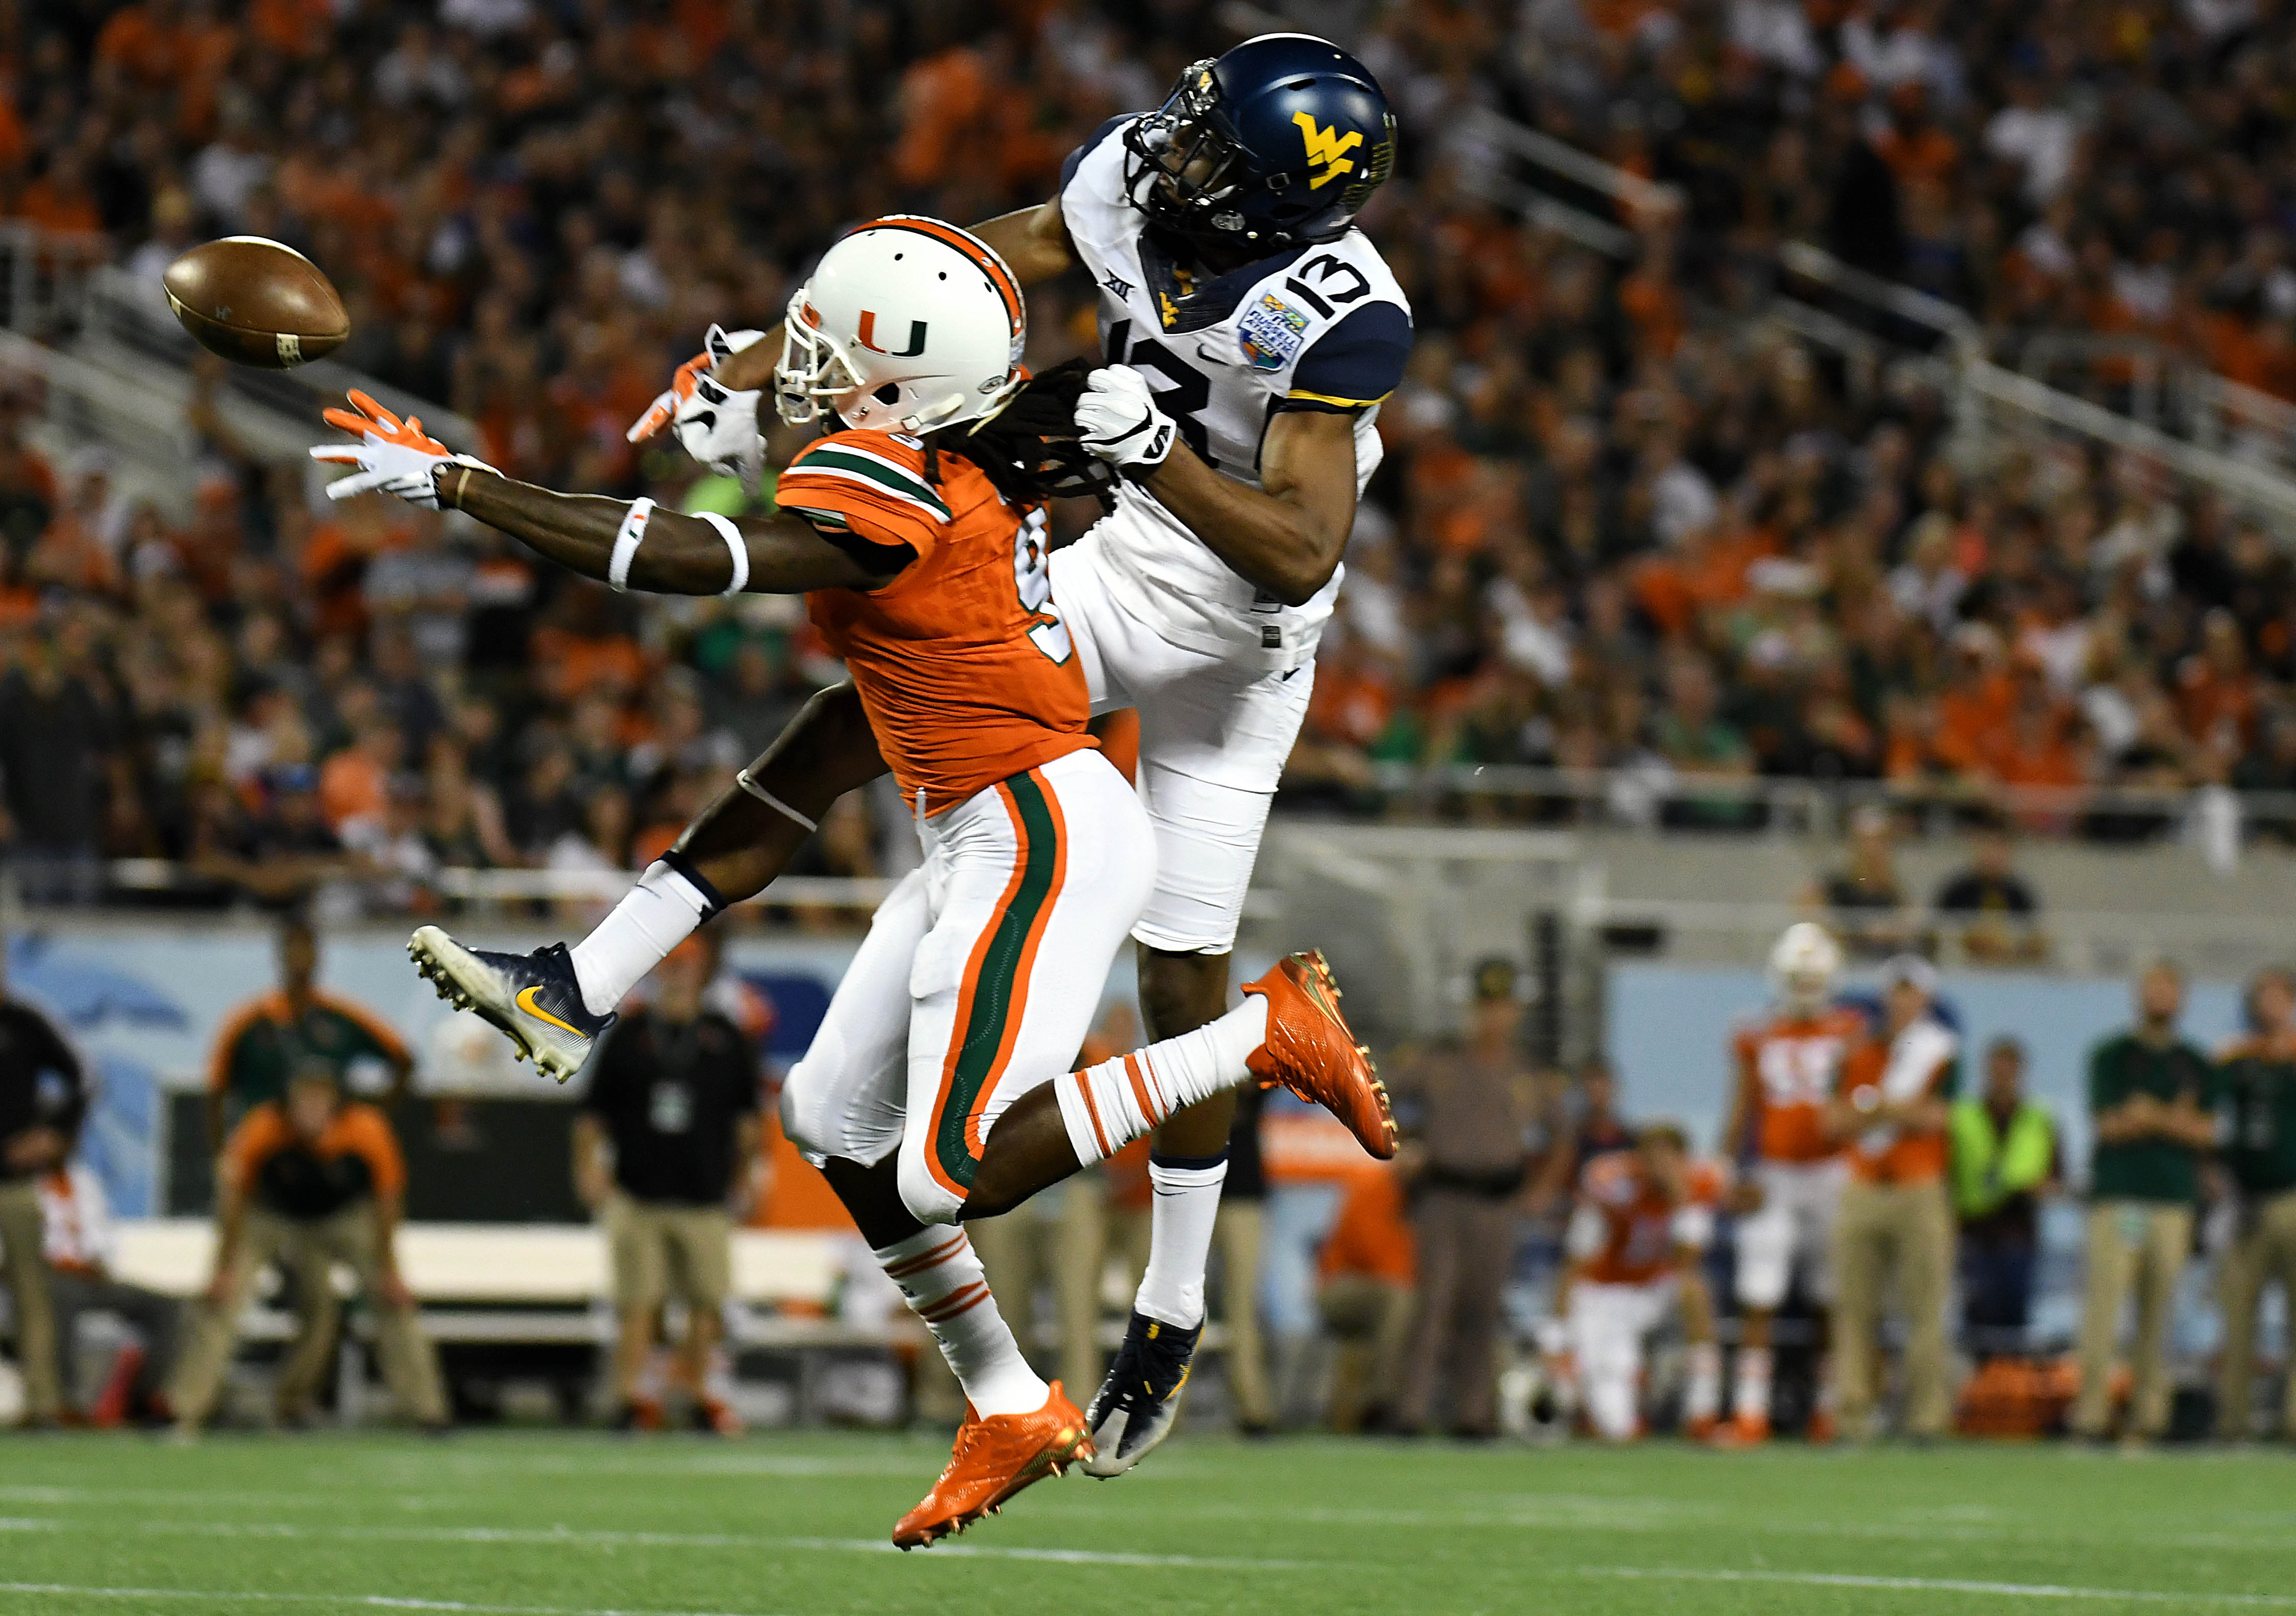 9772943-ncaa-football-russell-athletic-bowl-west-virginia-vs-miami